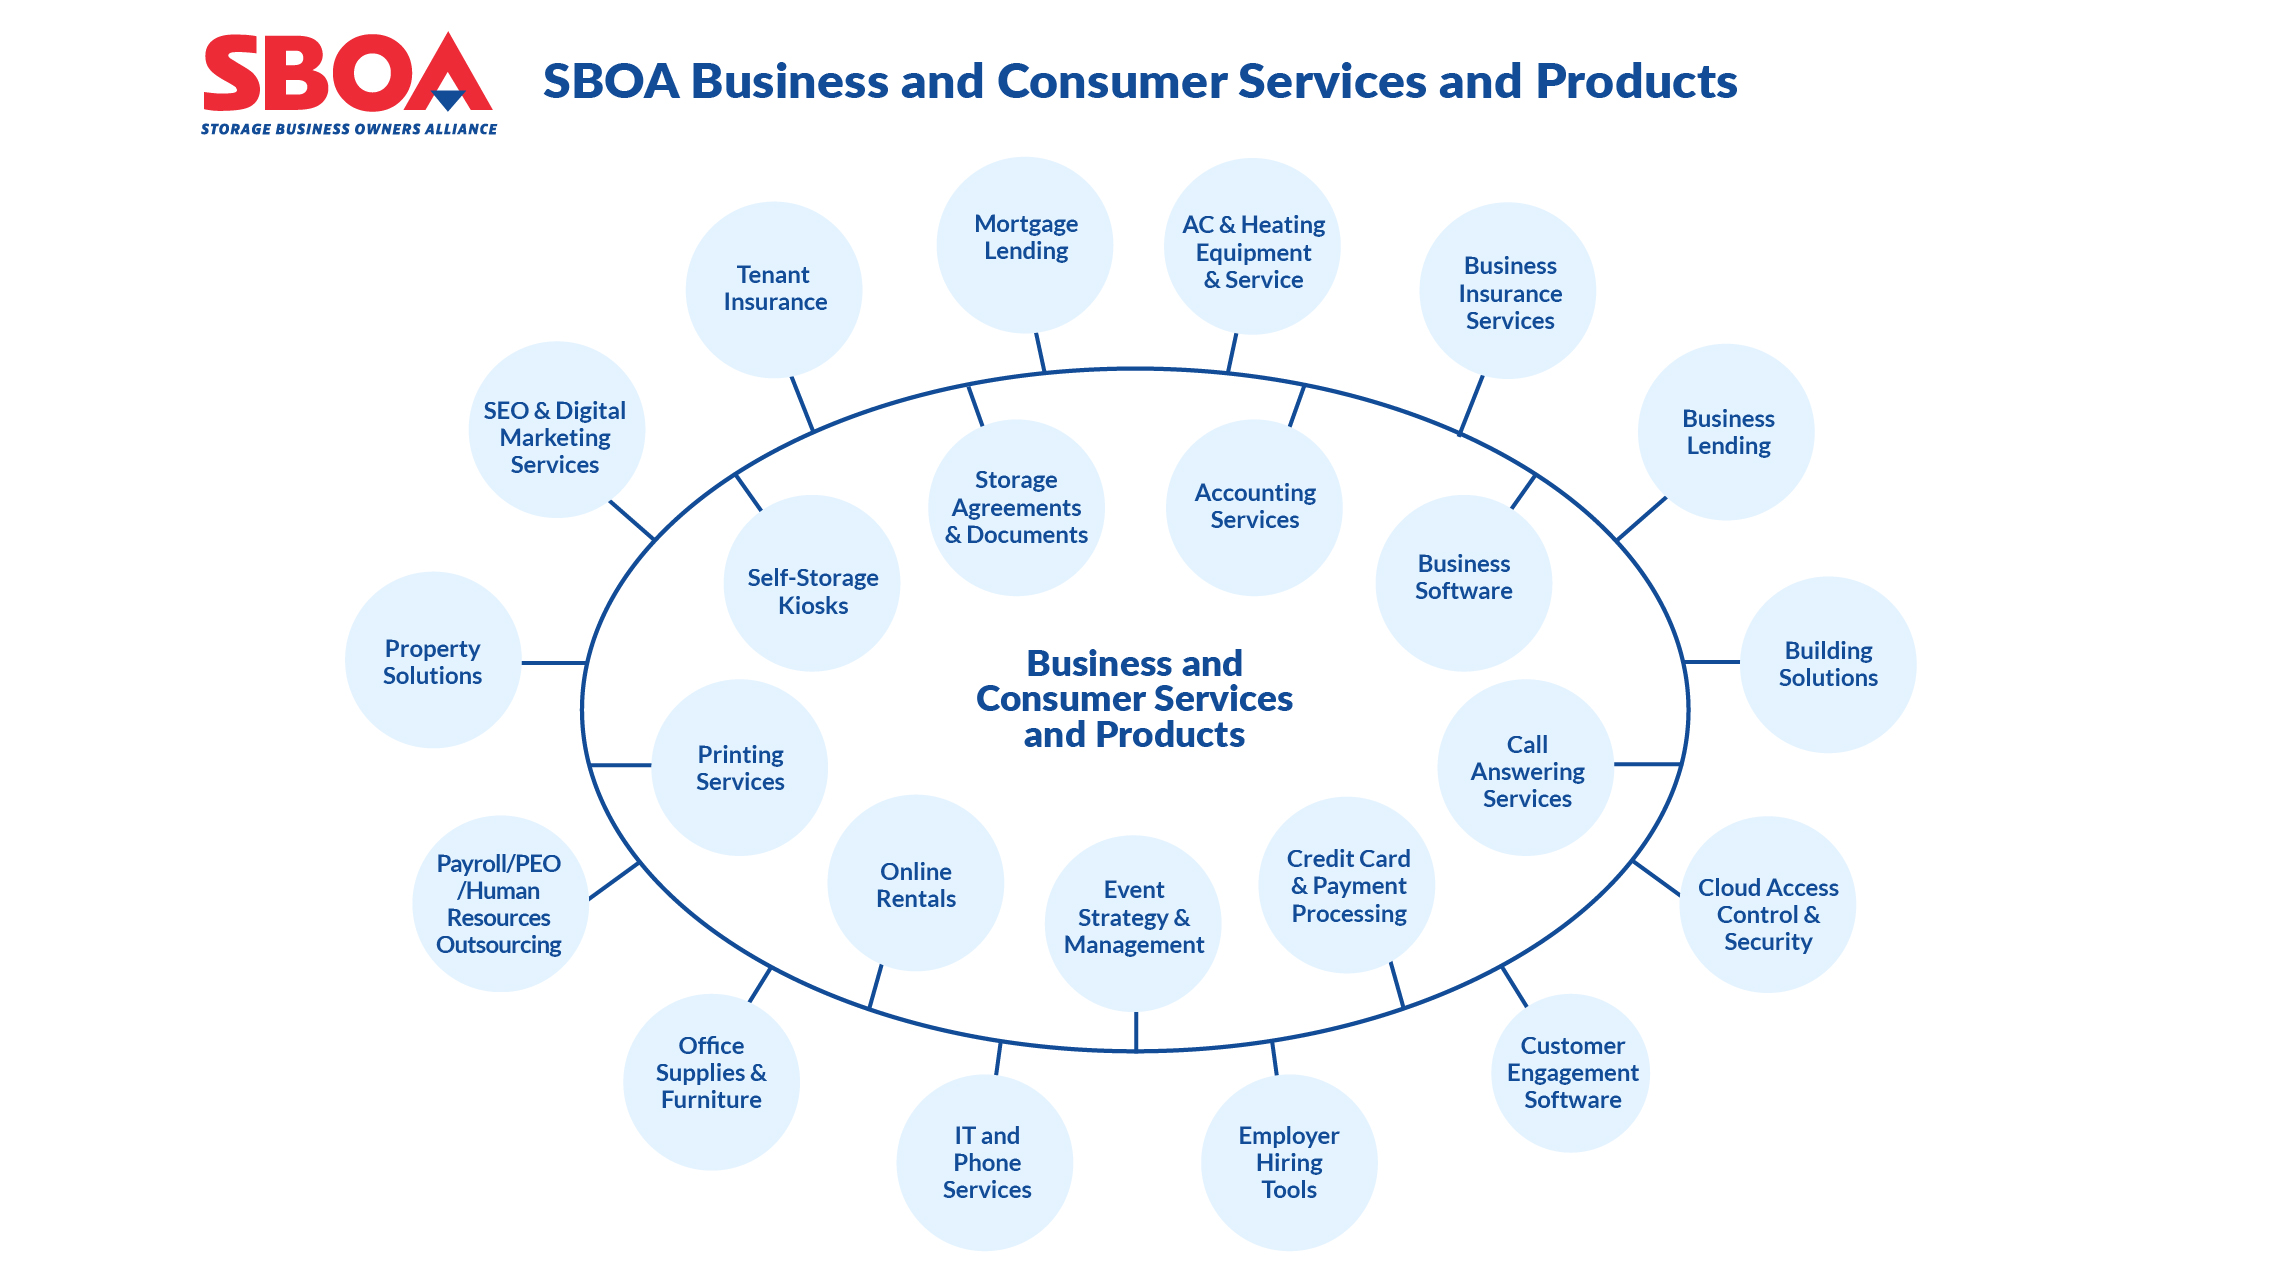 Storage Business Owners Alliance services and products wheel graphic